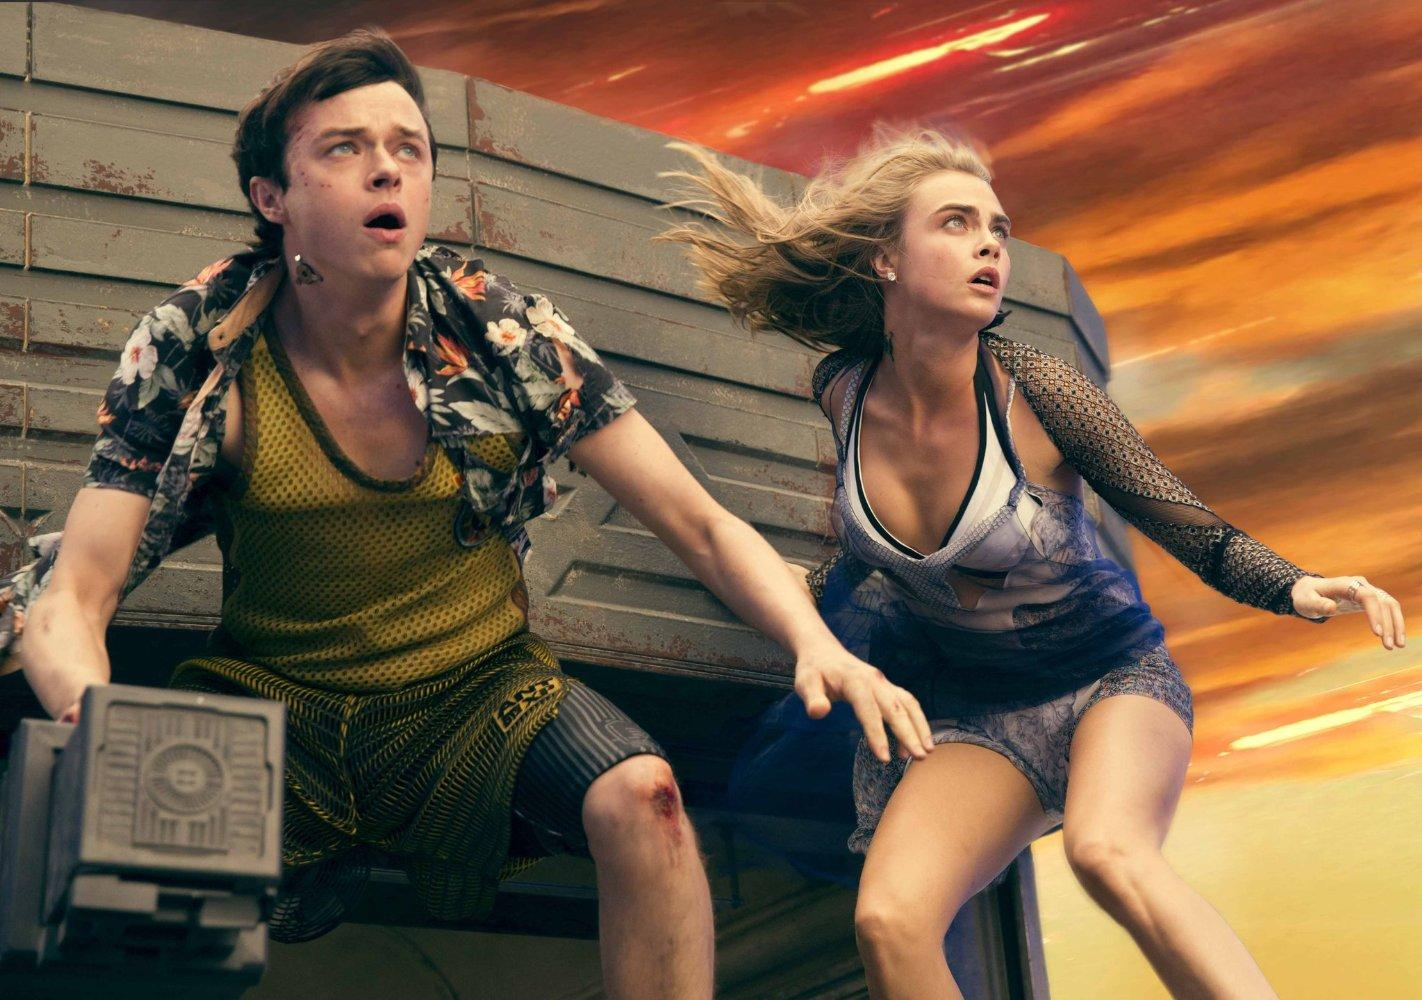 Luc Besson production company EuropaCorp struggling after Valerian flop